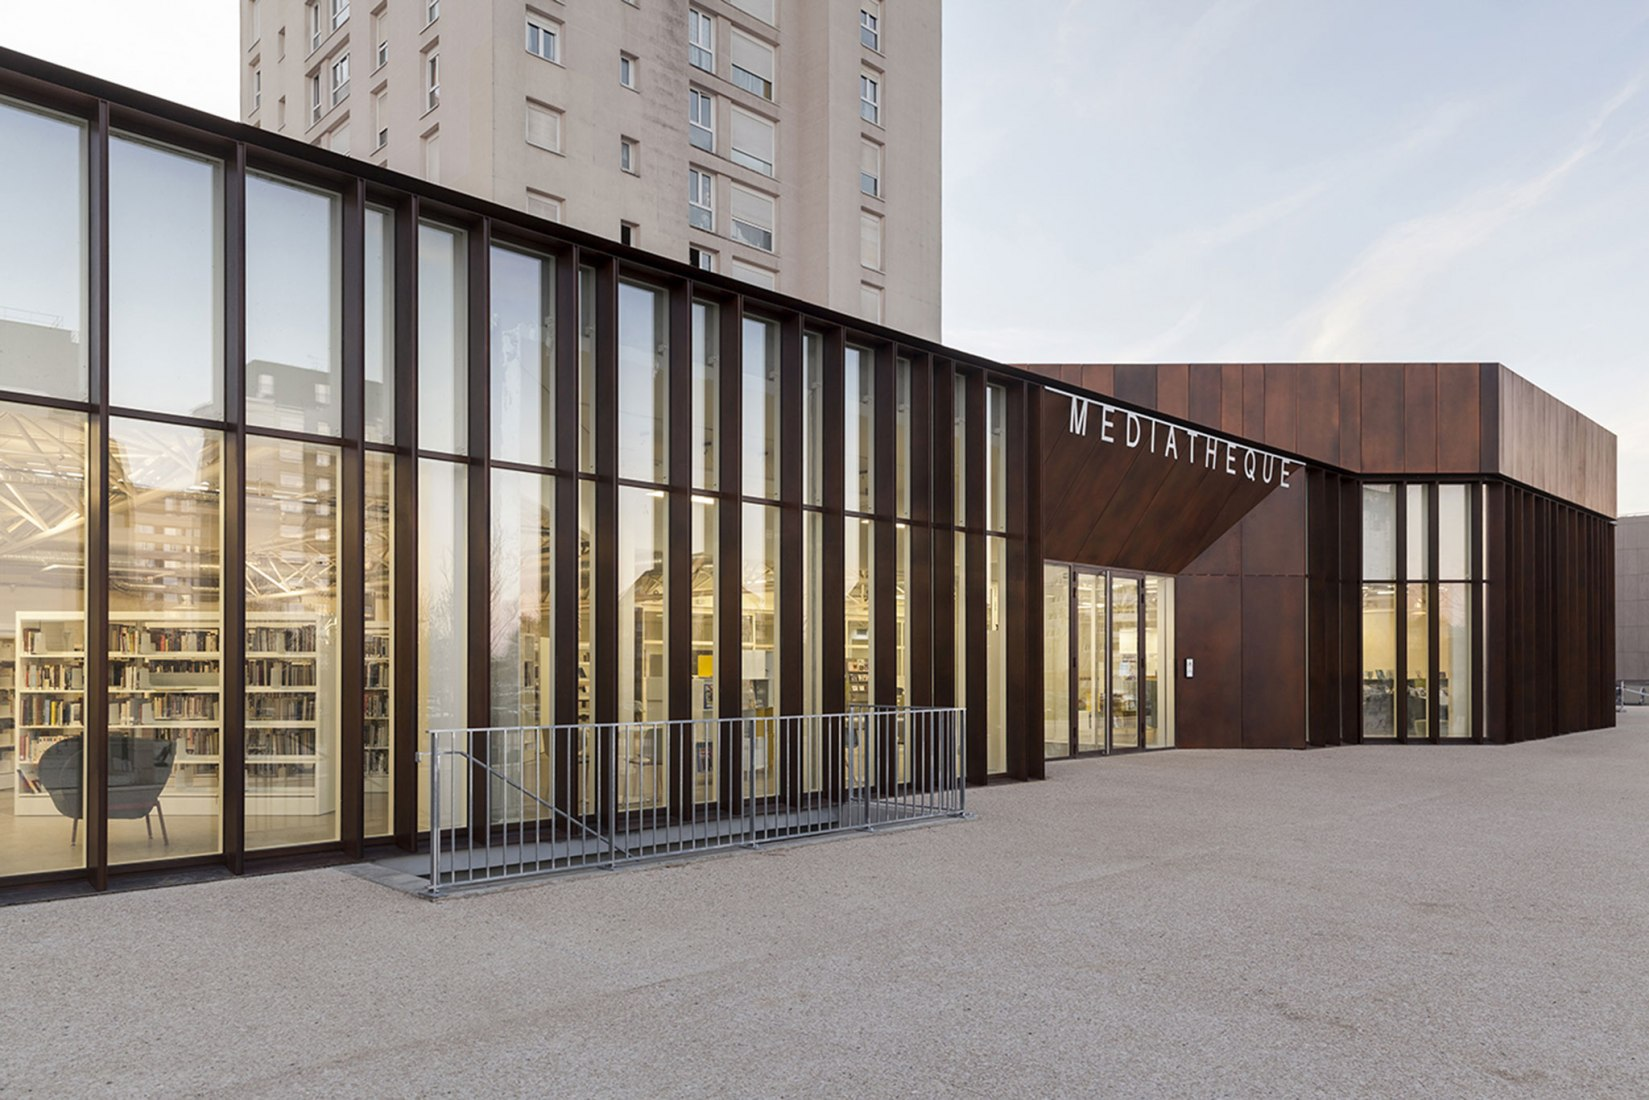 Renovation of Albert Schweitzer Community Center by MOA. Photograph by Cyrille Lallement.